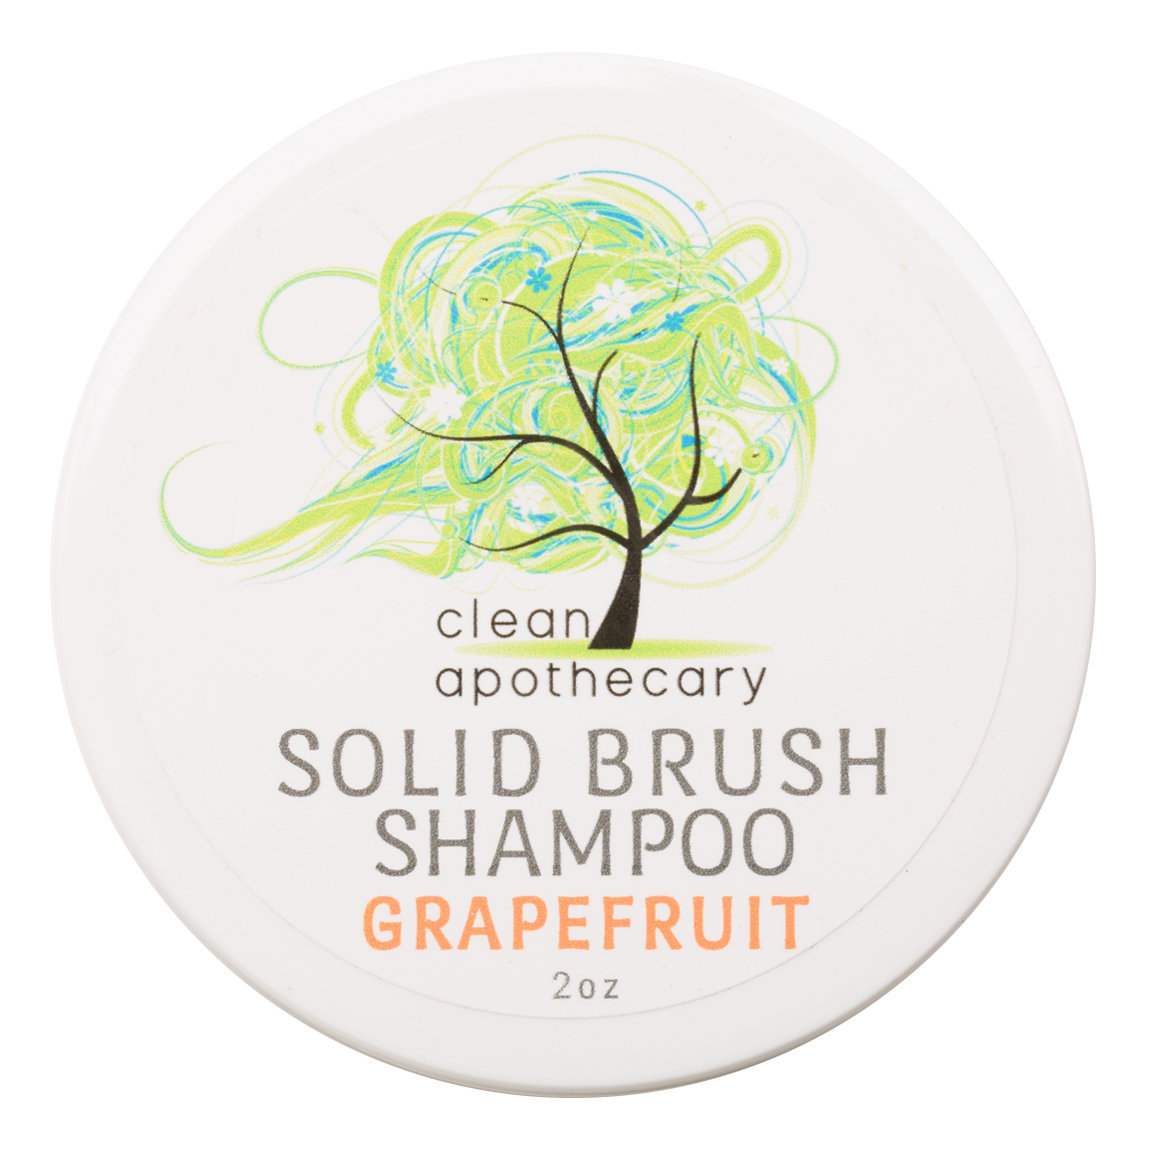 Clean Apothecary Brush Shampoo Grapefruit product swatch.